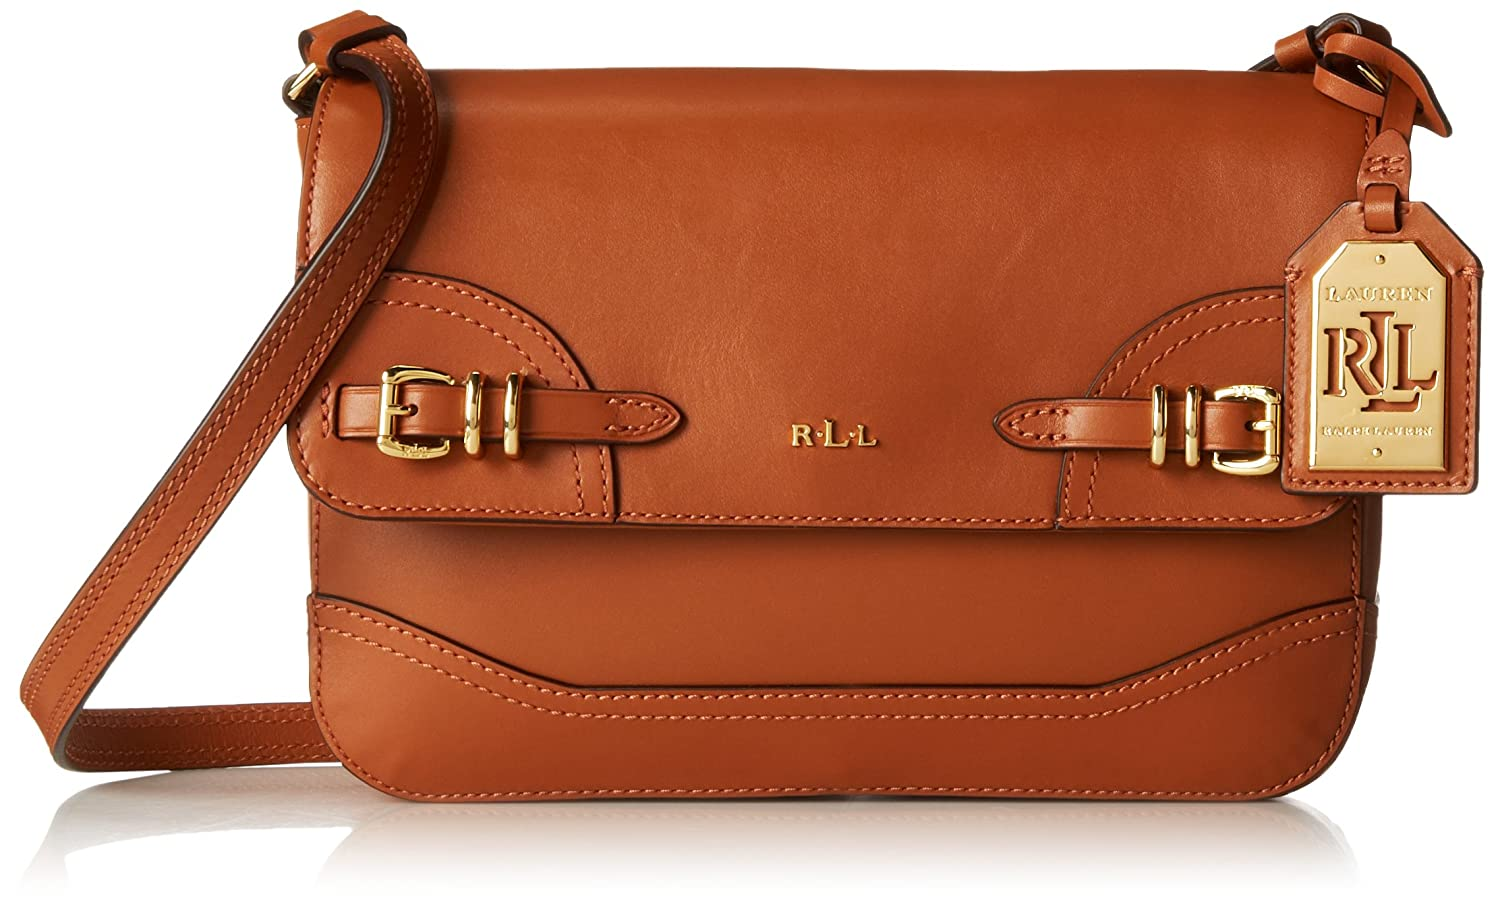 Ralph Lauren Ladies Leather Medium Messenger Crossbody Bag Tan Brown Gift  Box  Amazon.co.uk  Shoes   Bags 89dce5f98d4fa